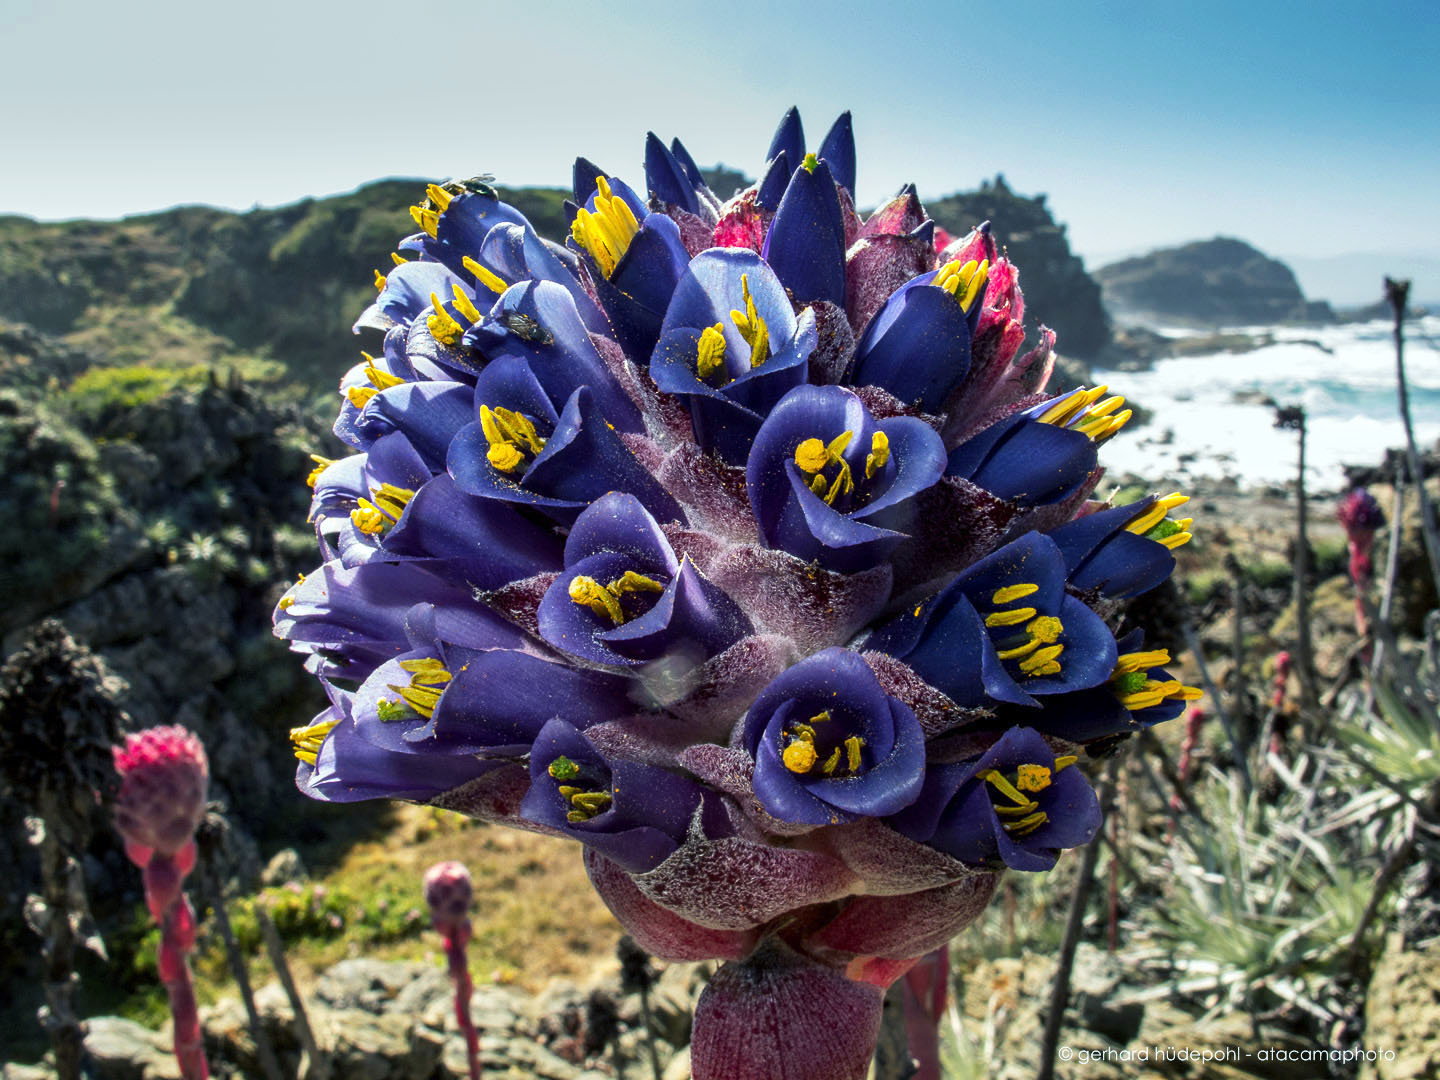 Amazing blue flowers of the rare chagual chico a bromeliad of the amazing blue flowers of the rare chagual chico a bromeliad of the coastal zone of chile izmirmasajfo